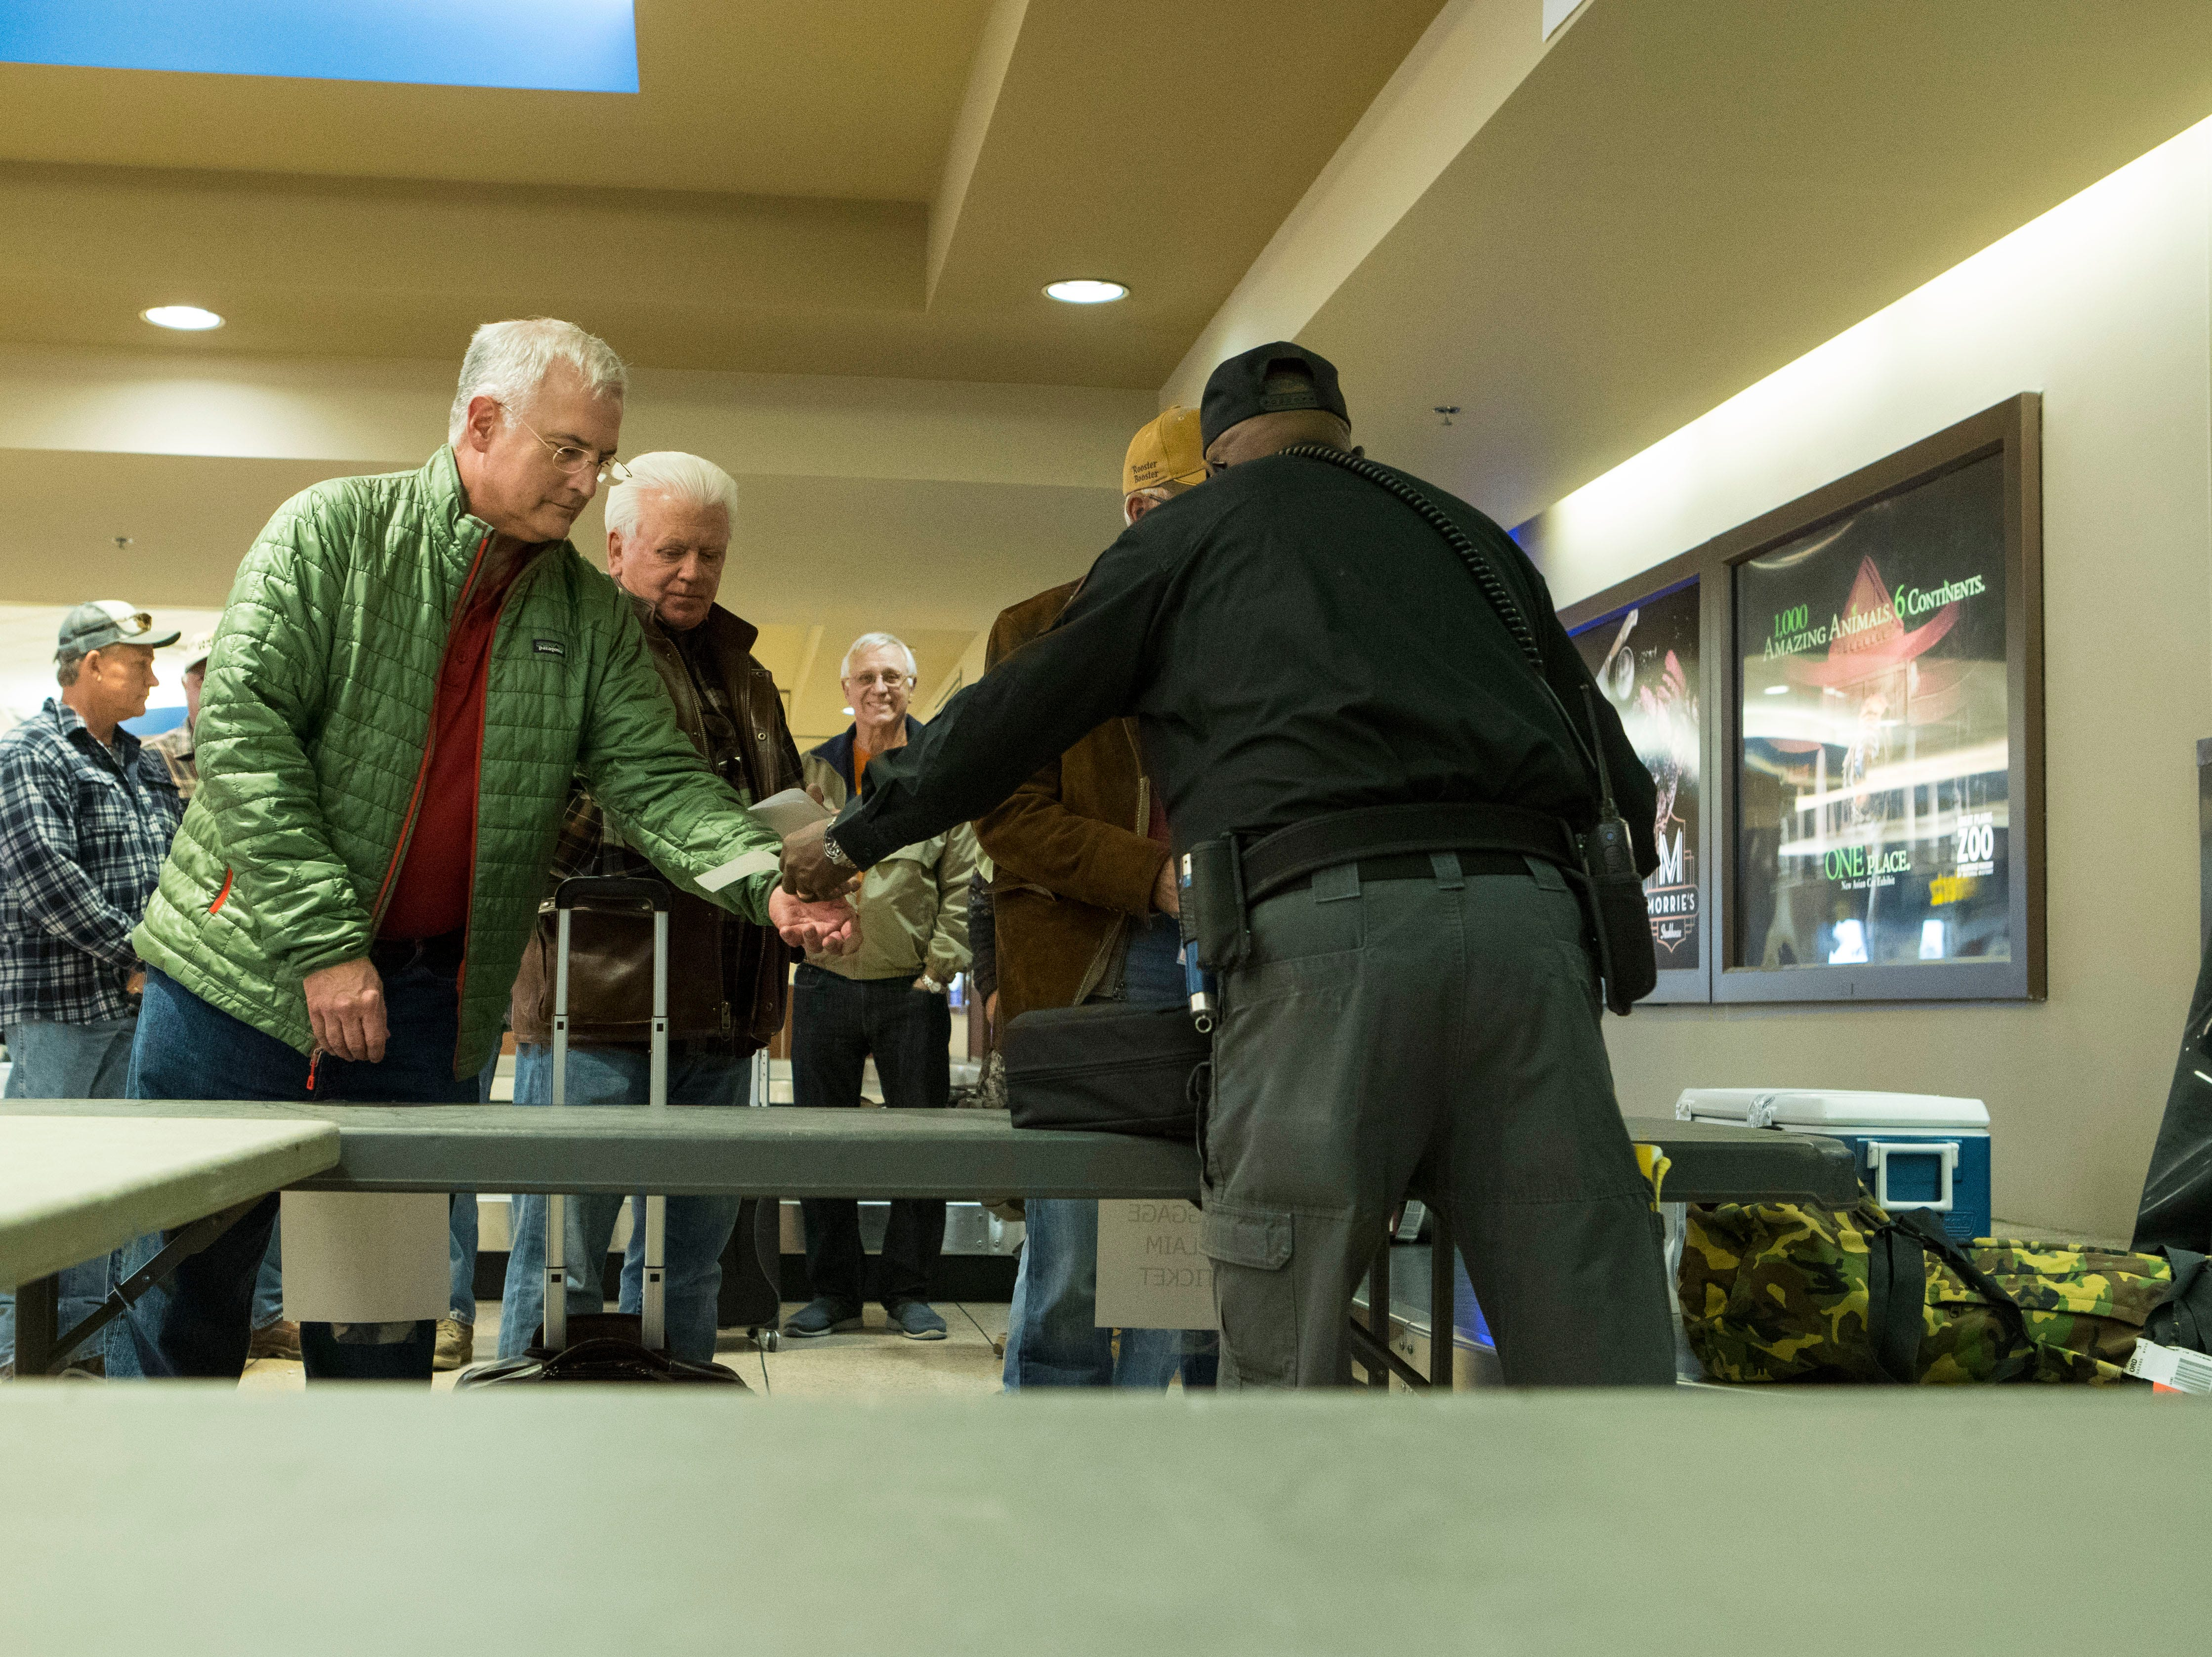 Pheasant hunters pick up their guns at security at the Sioux Falls Regional Airport Friday, Oct. 19, 2018.